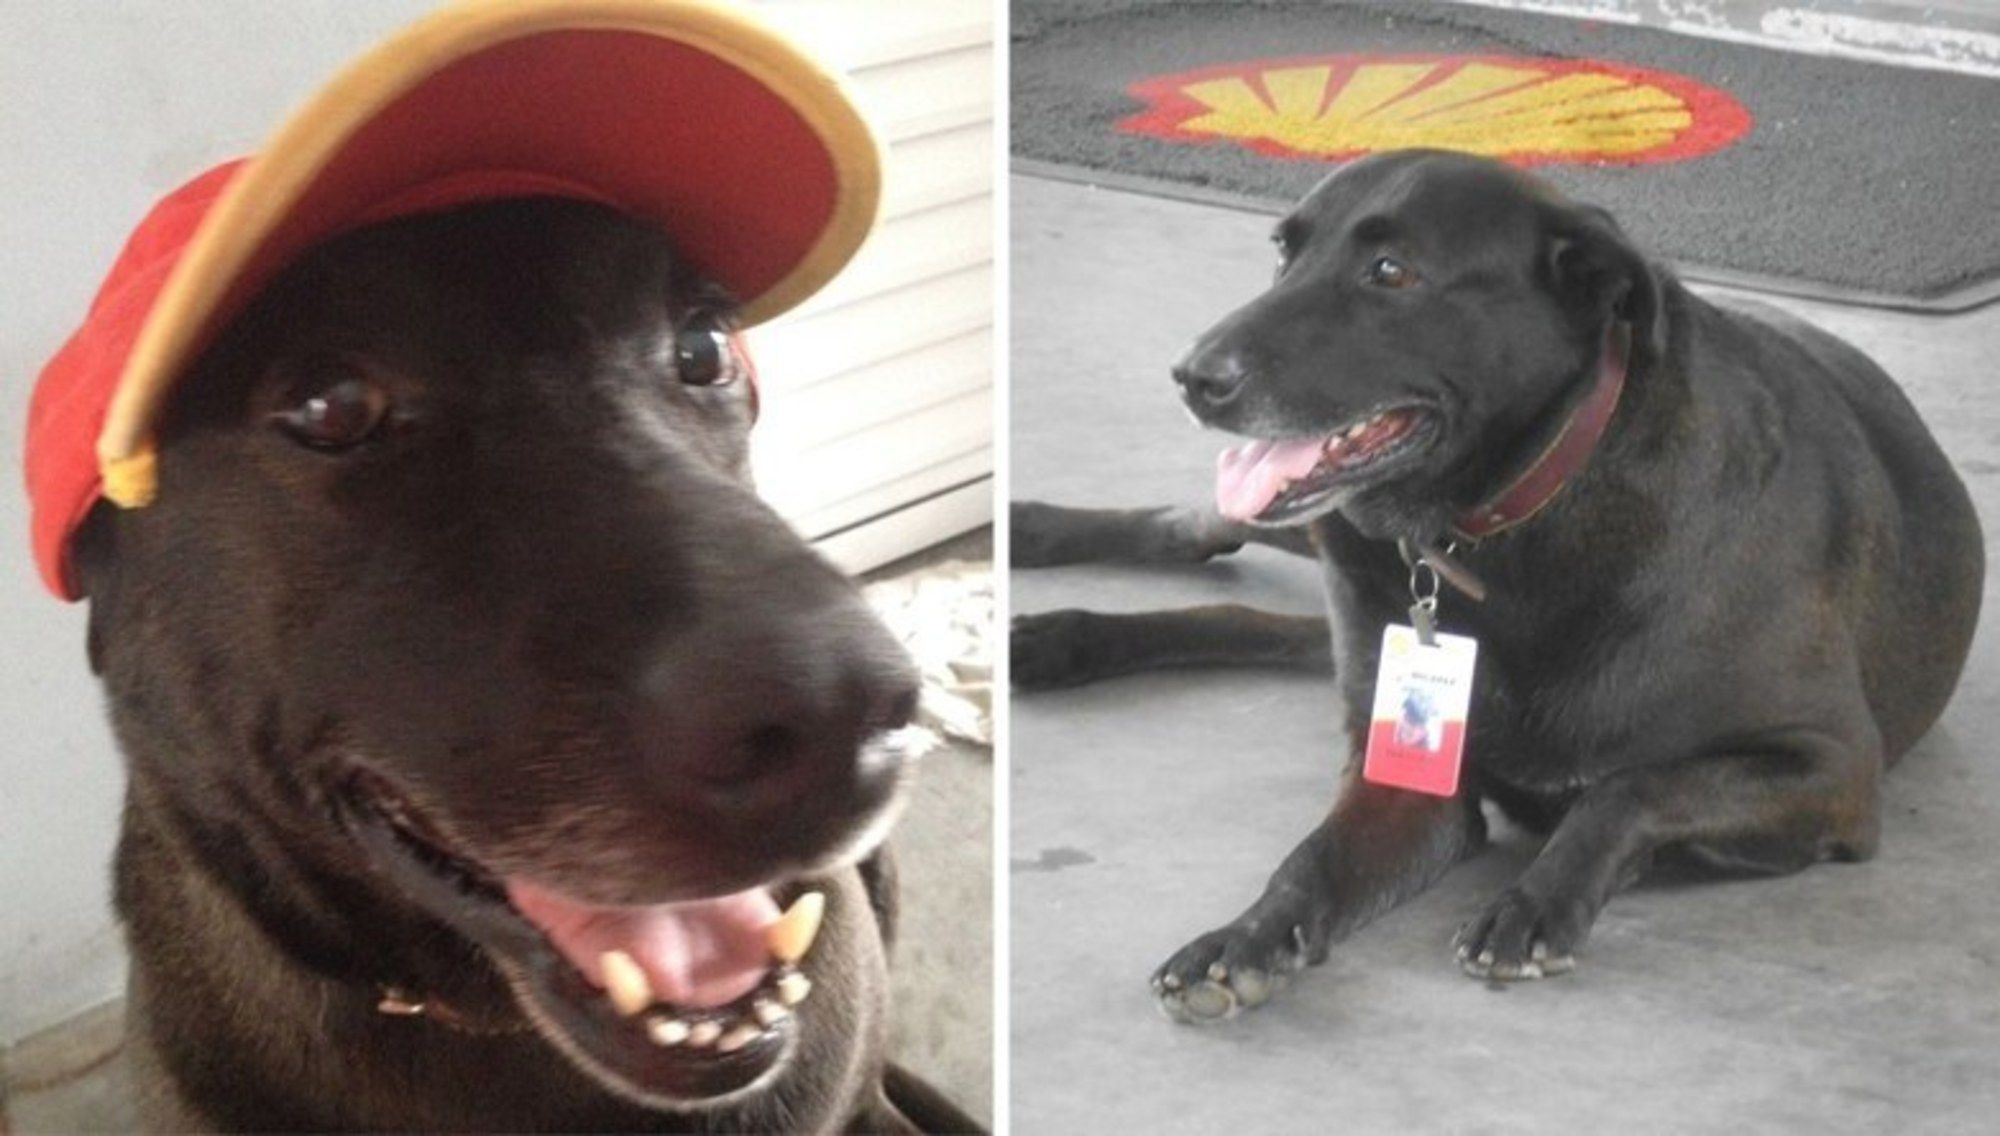 Dog Abandoned At Gas Station Is Now Its Cutest Employee With Images Dogs Shell Gas Station Jack Russell Terrier